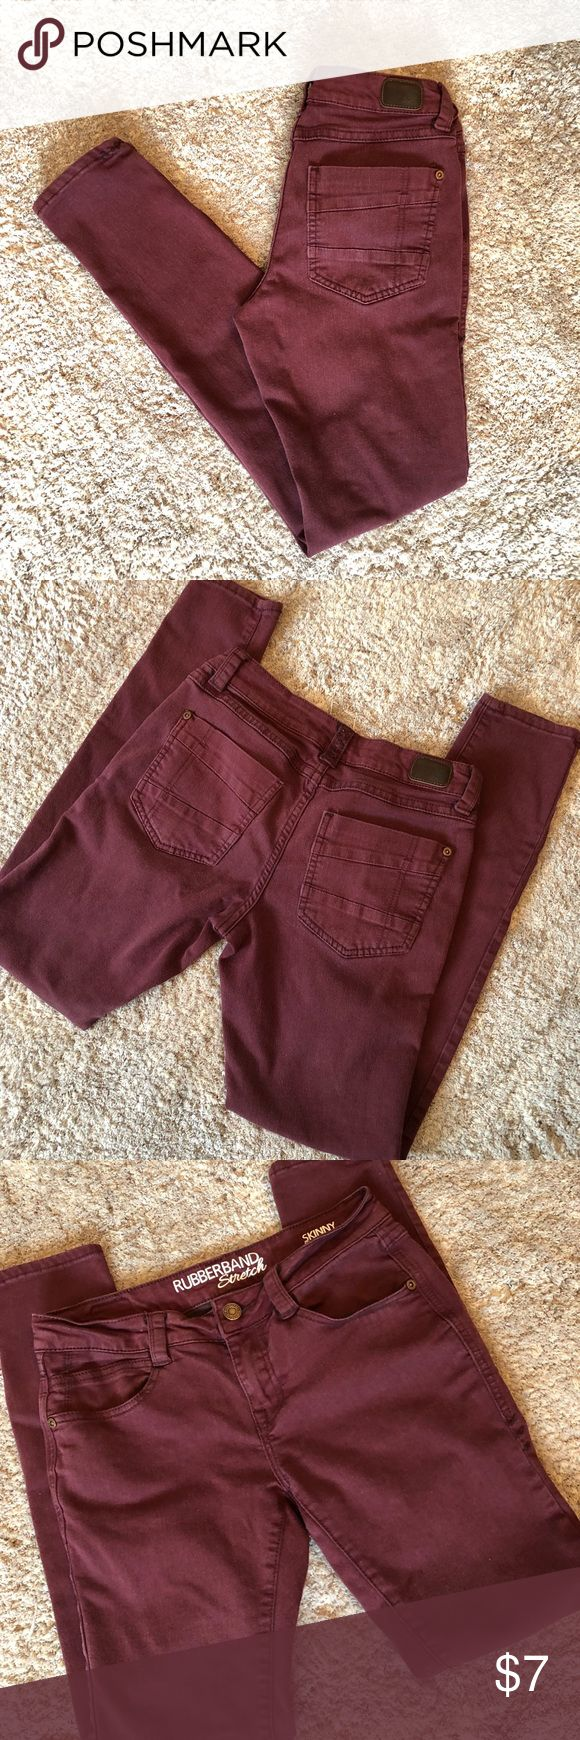 Maroon Skinny Jeans! Great maroon colored Rubberband Stretch skinny jeans! 27 inch waist, 29.5 inch inseam and 7.5 inch rise. NO trades. Bundle for additional discounts! Rubberband Stretch Jeans Skinny